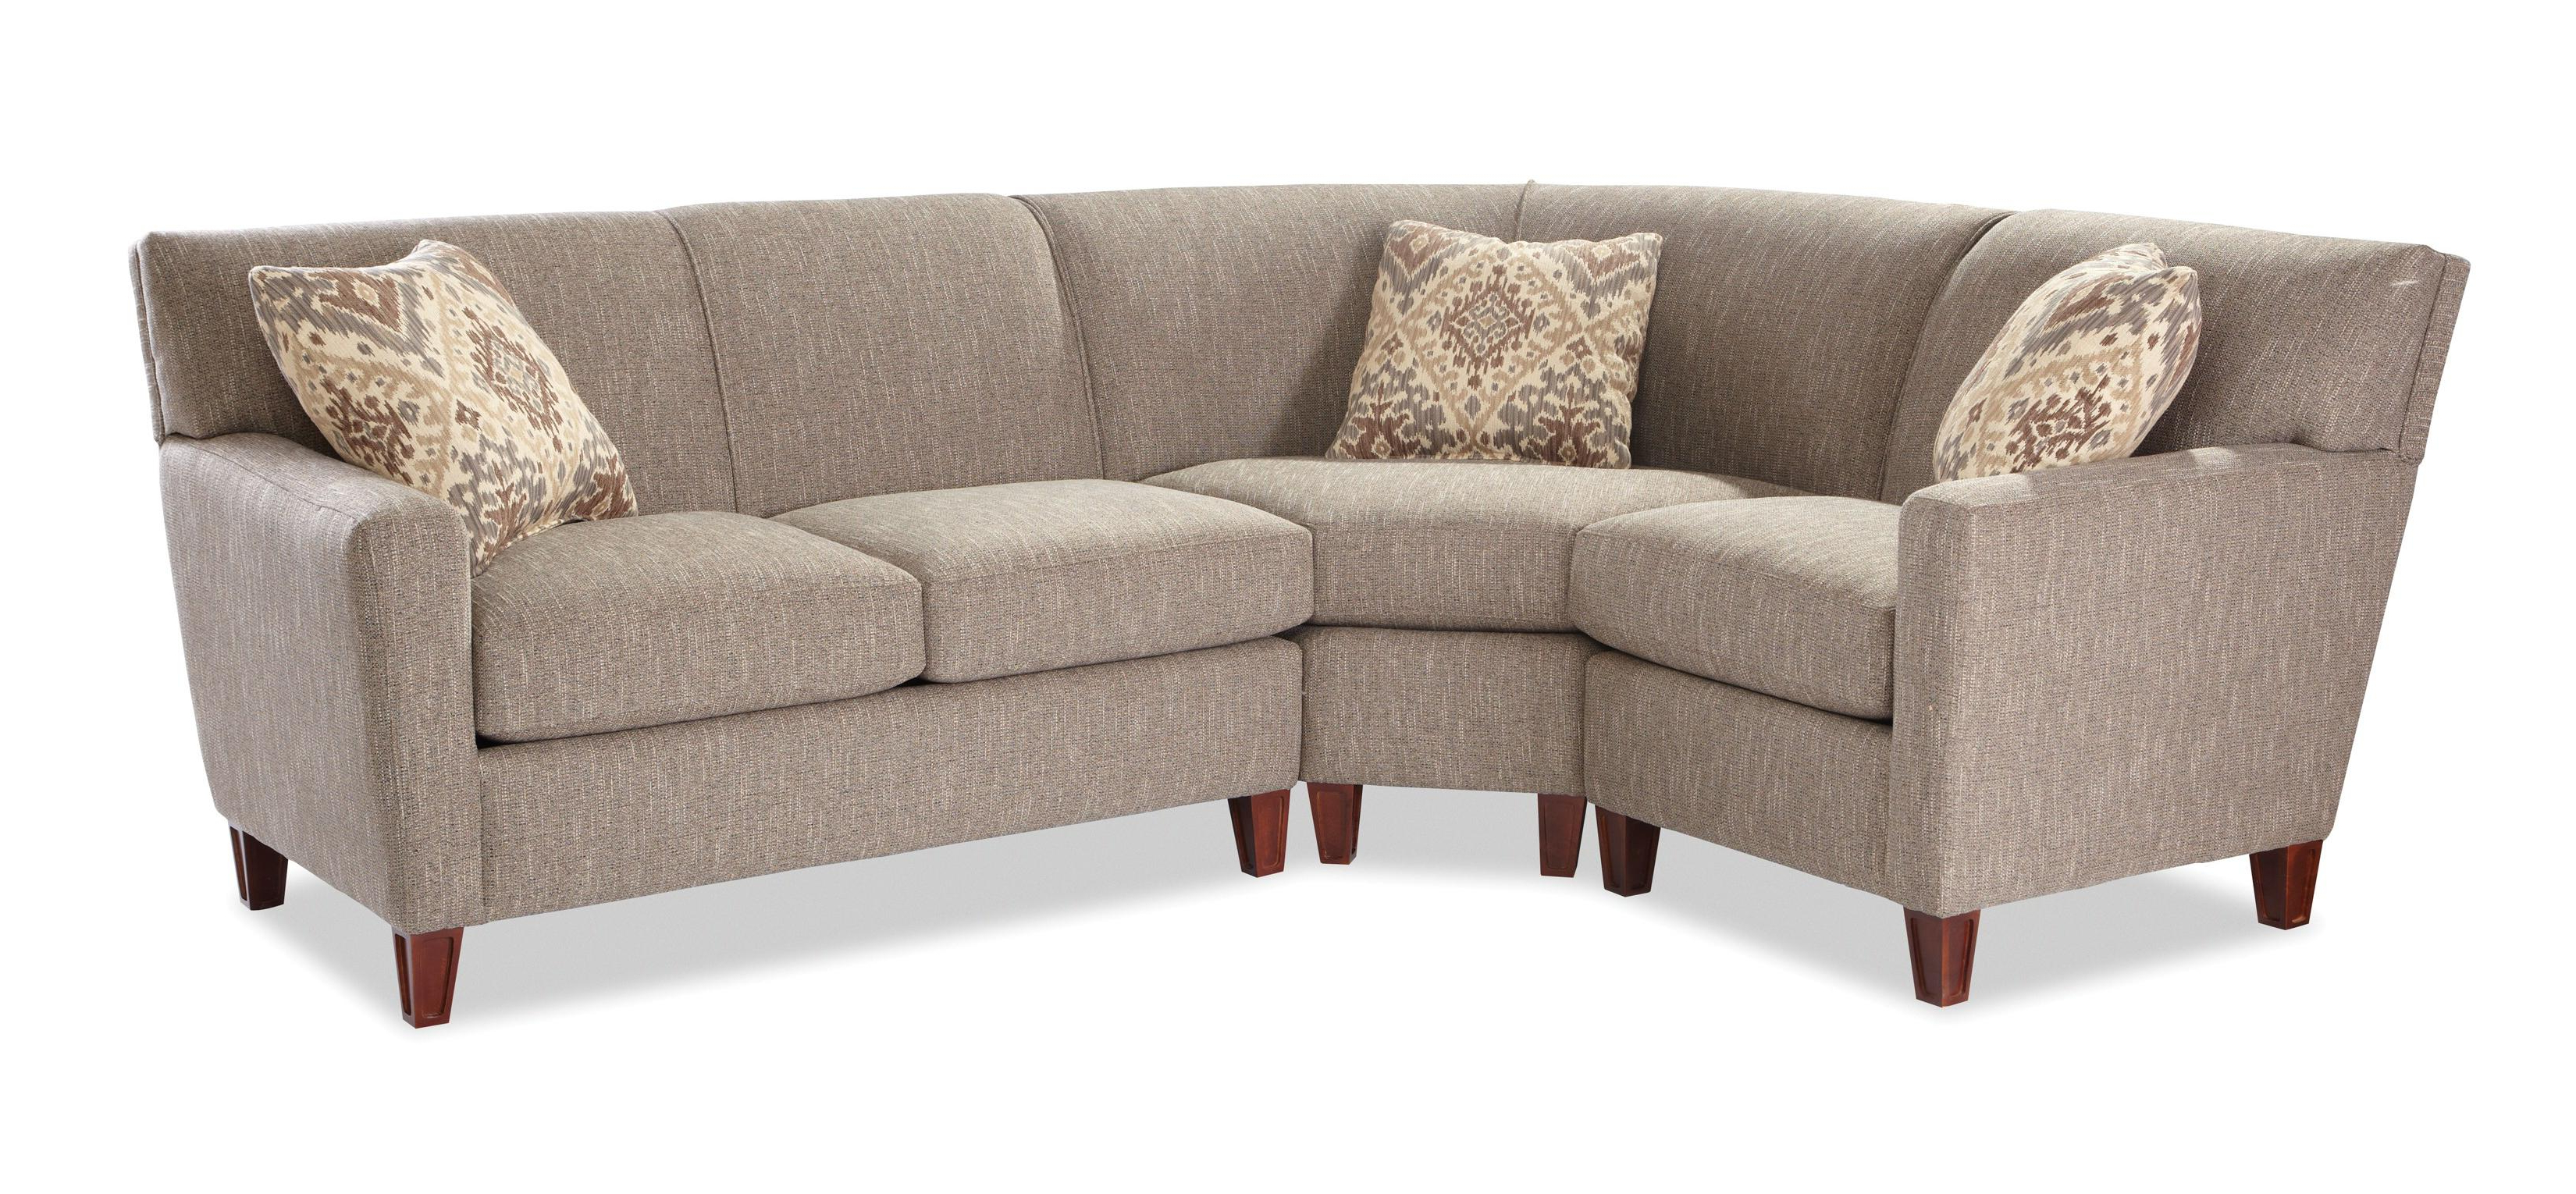 Turdur 2 Piece Sectionals With Raf Loveseat With Regard To Most Up To Date Laf Sofa Raf Loveseat (Gallery 15 of 20)